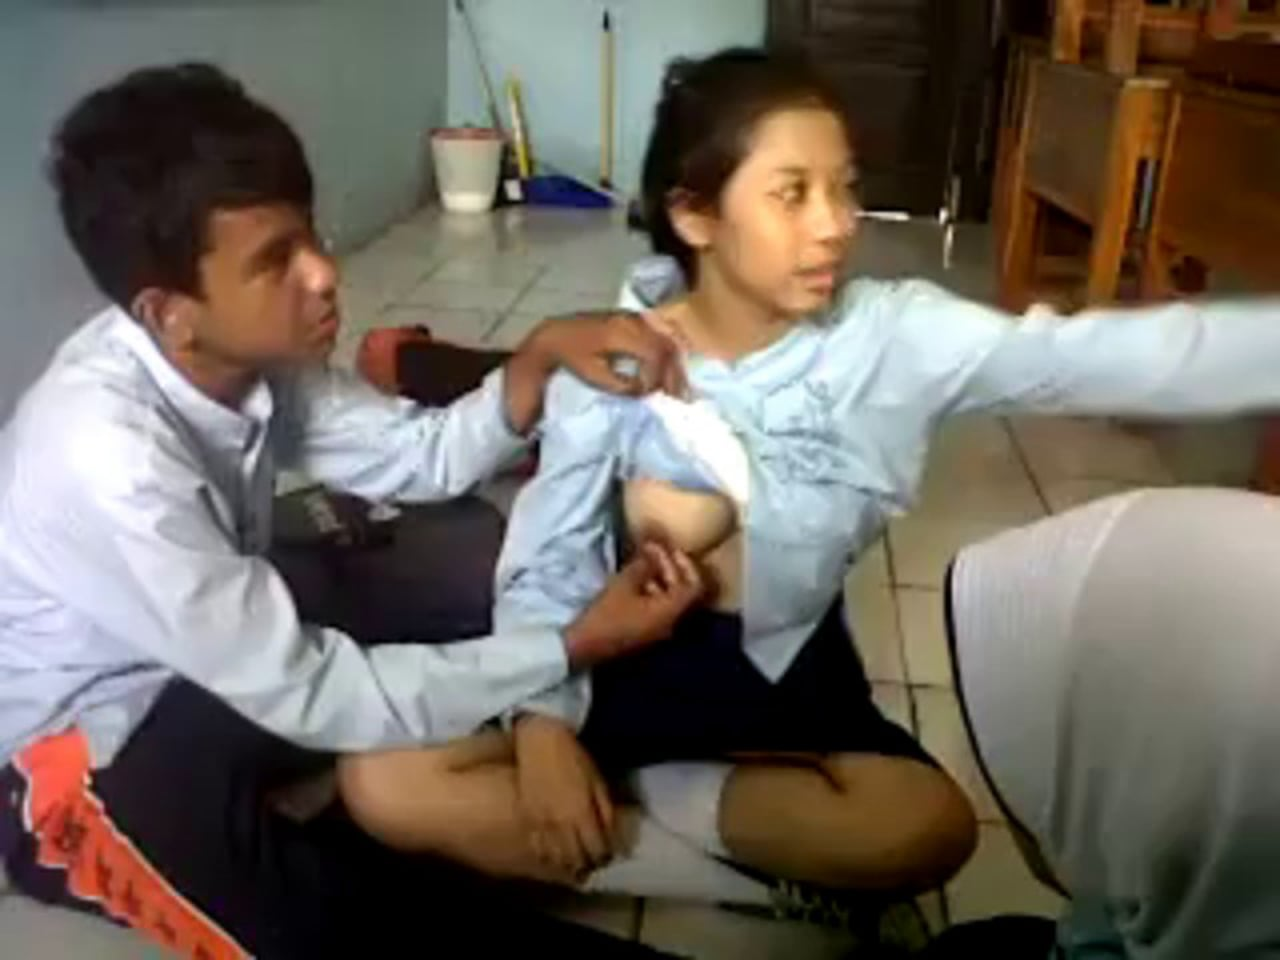 Video Sex Anak Sekolah Gay Indonesia - Other - Adult Videos-8778